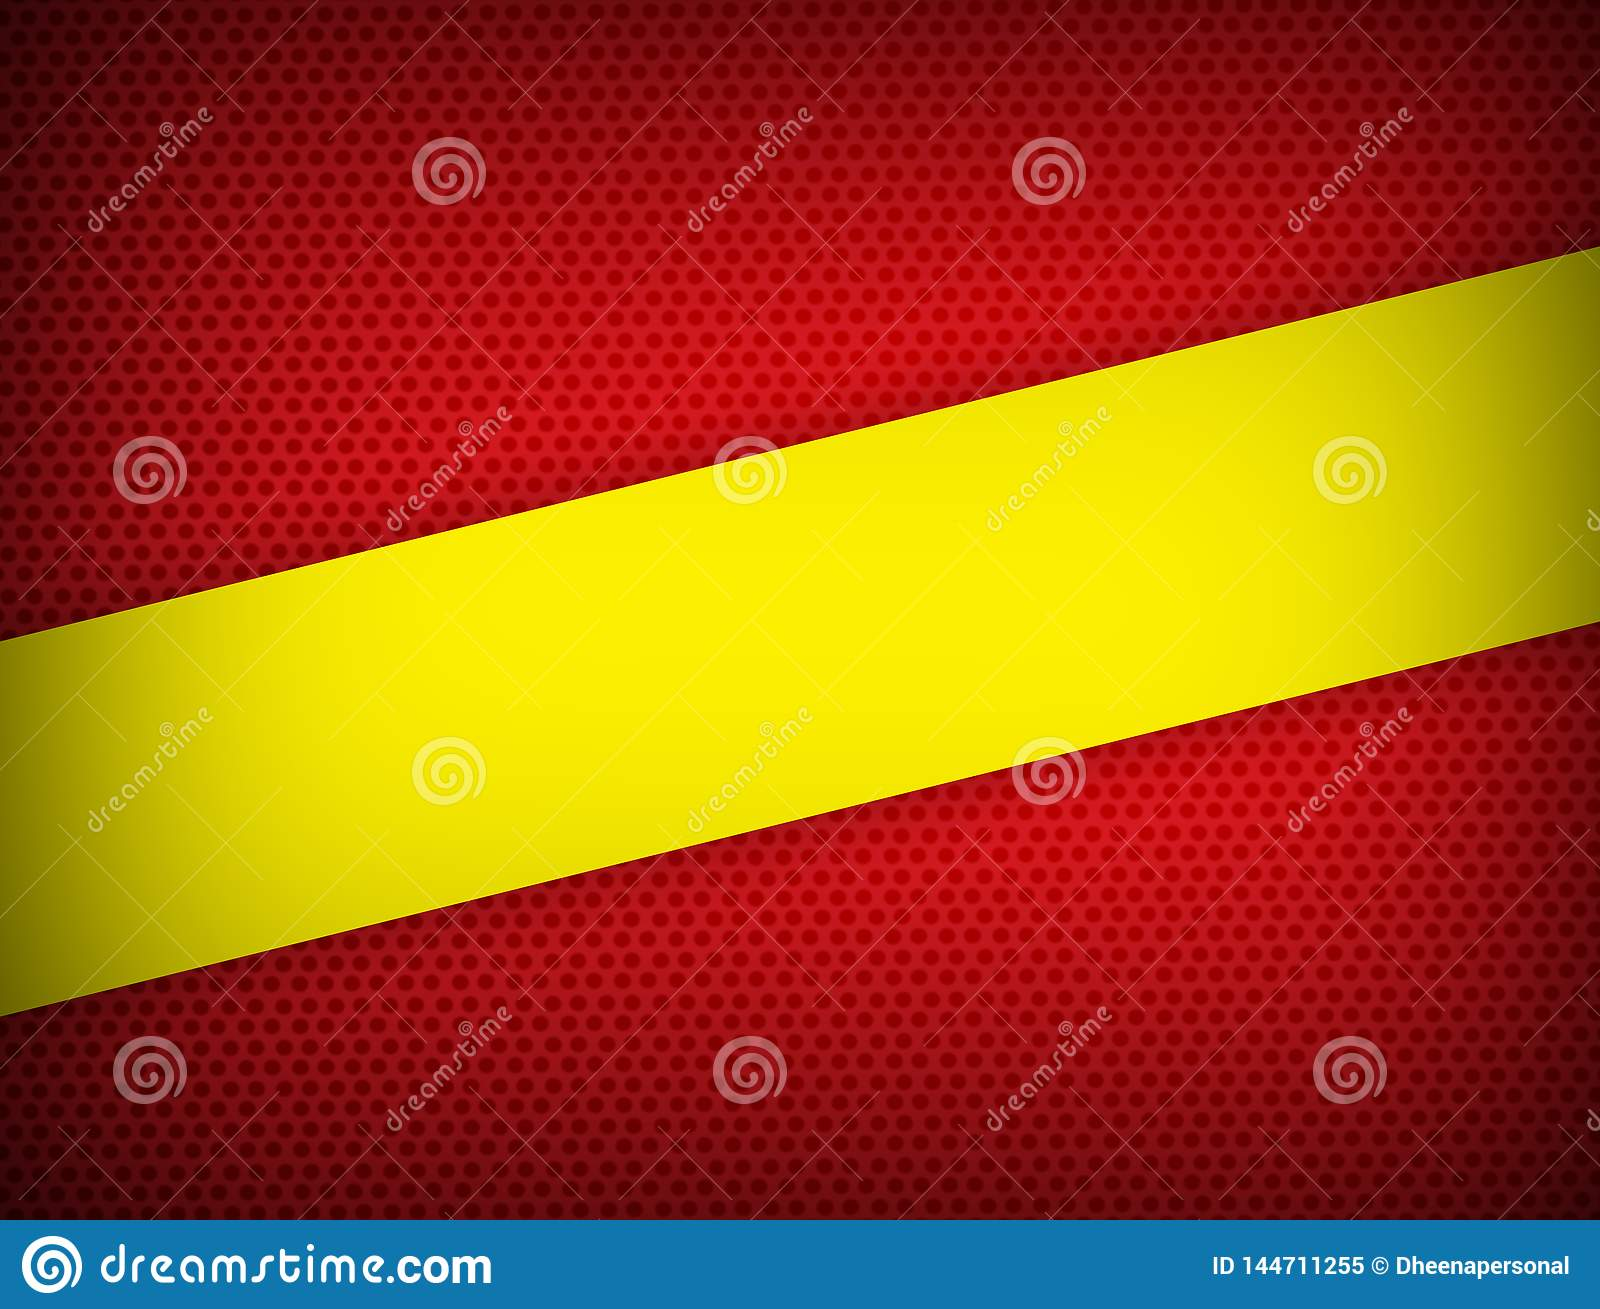 Red and yellow color geometric abstract background modern design with copy space Vector illustration.